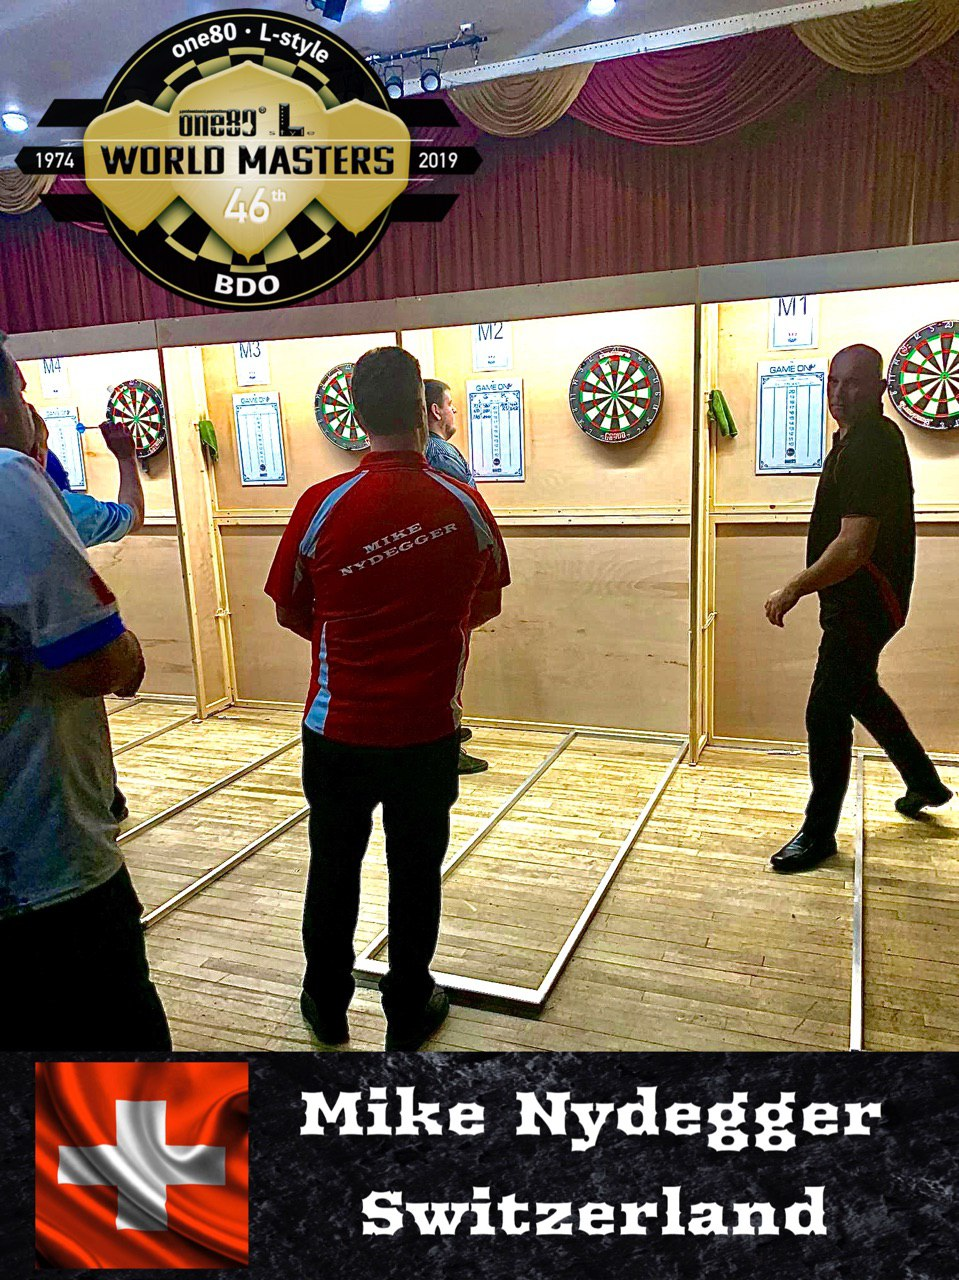 BDO World Masters 2019 Mike Nydegger Switzerland